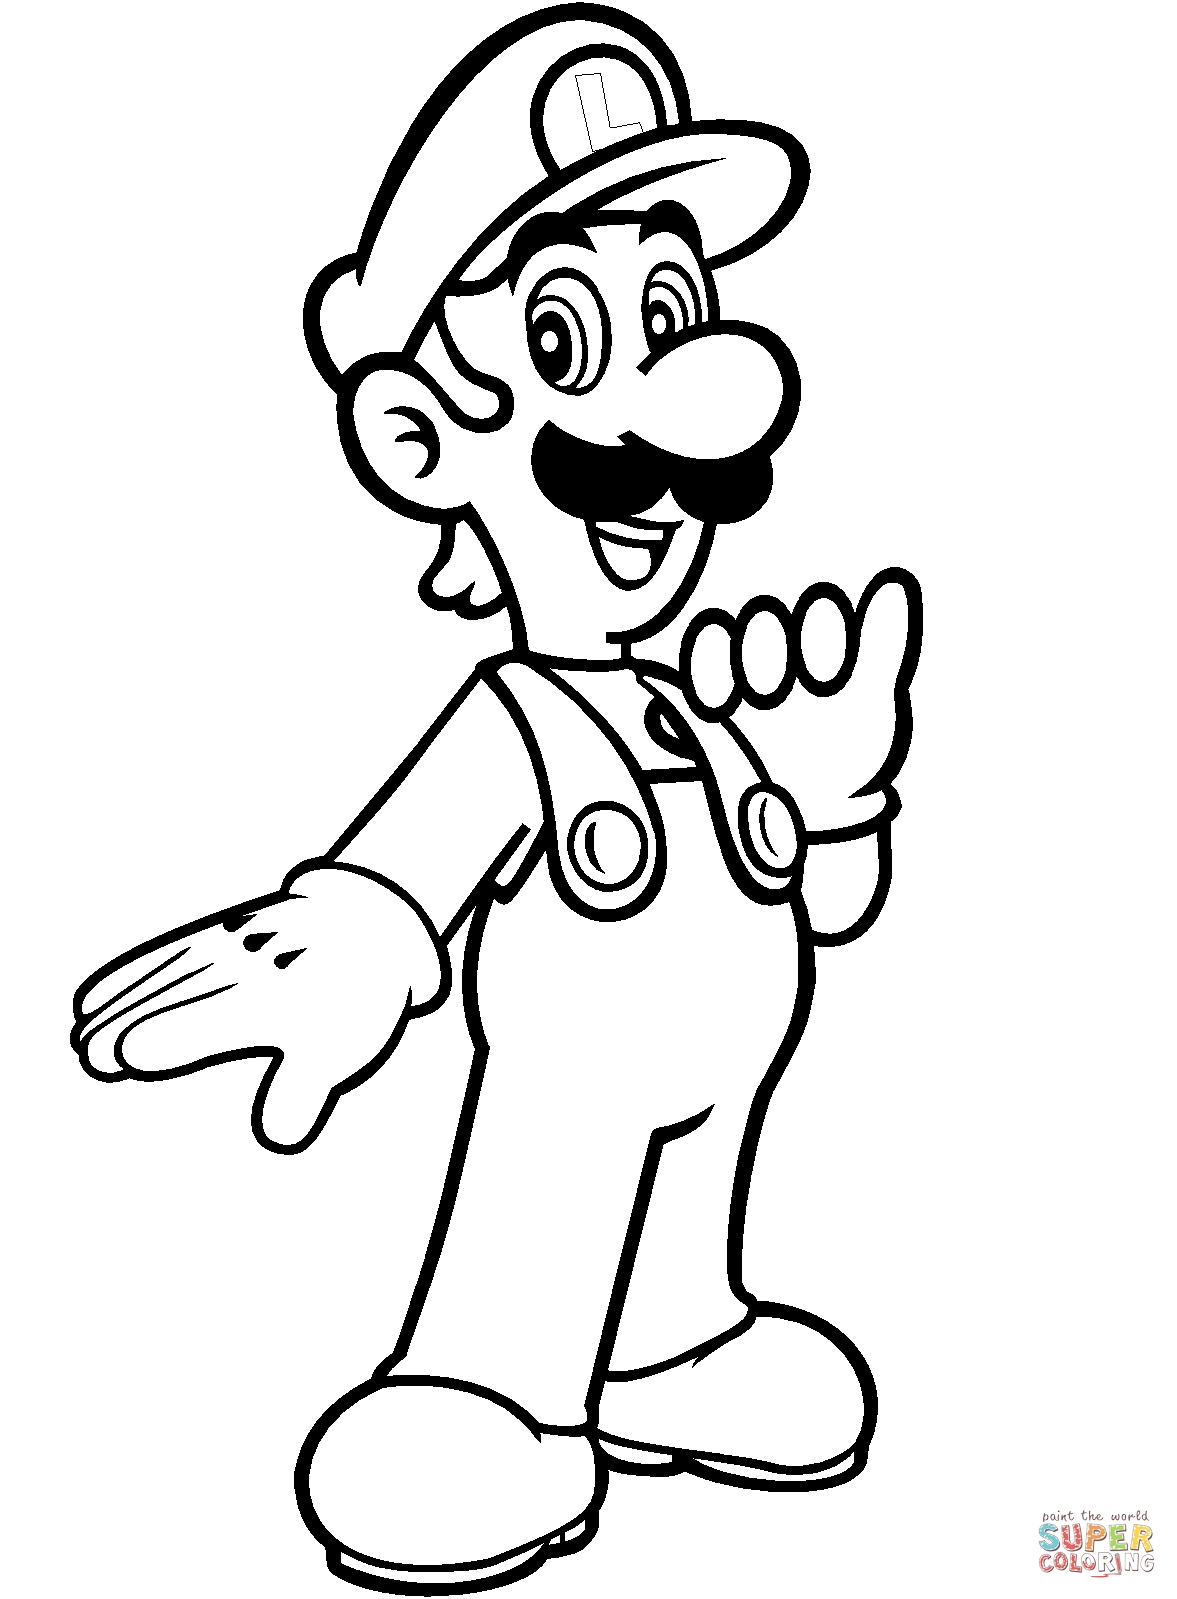 mario and luigi coloring pages - luigi from mario bros